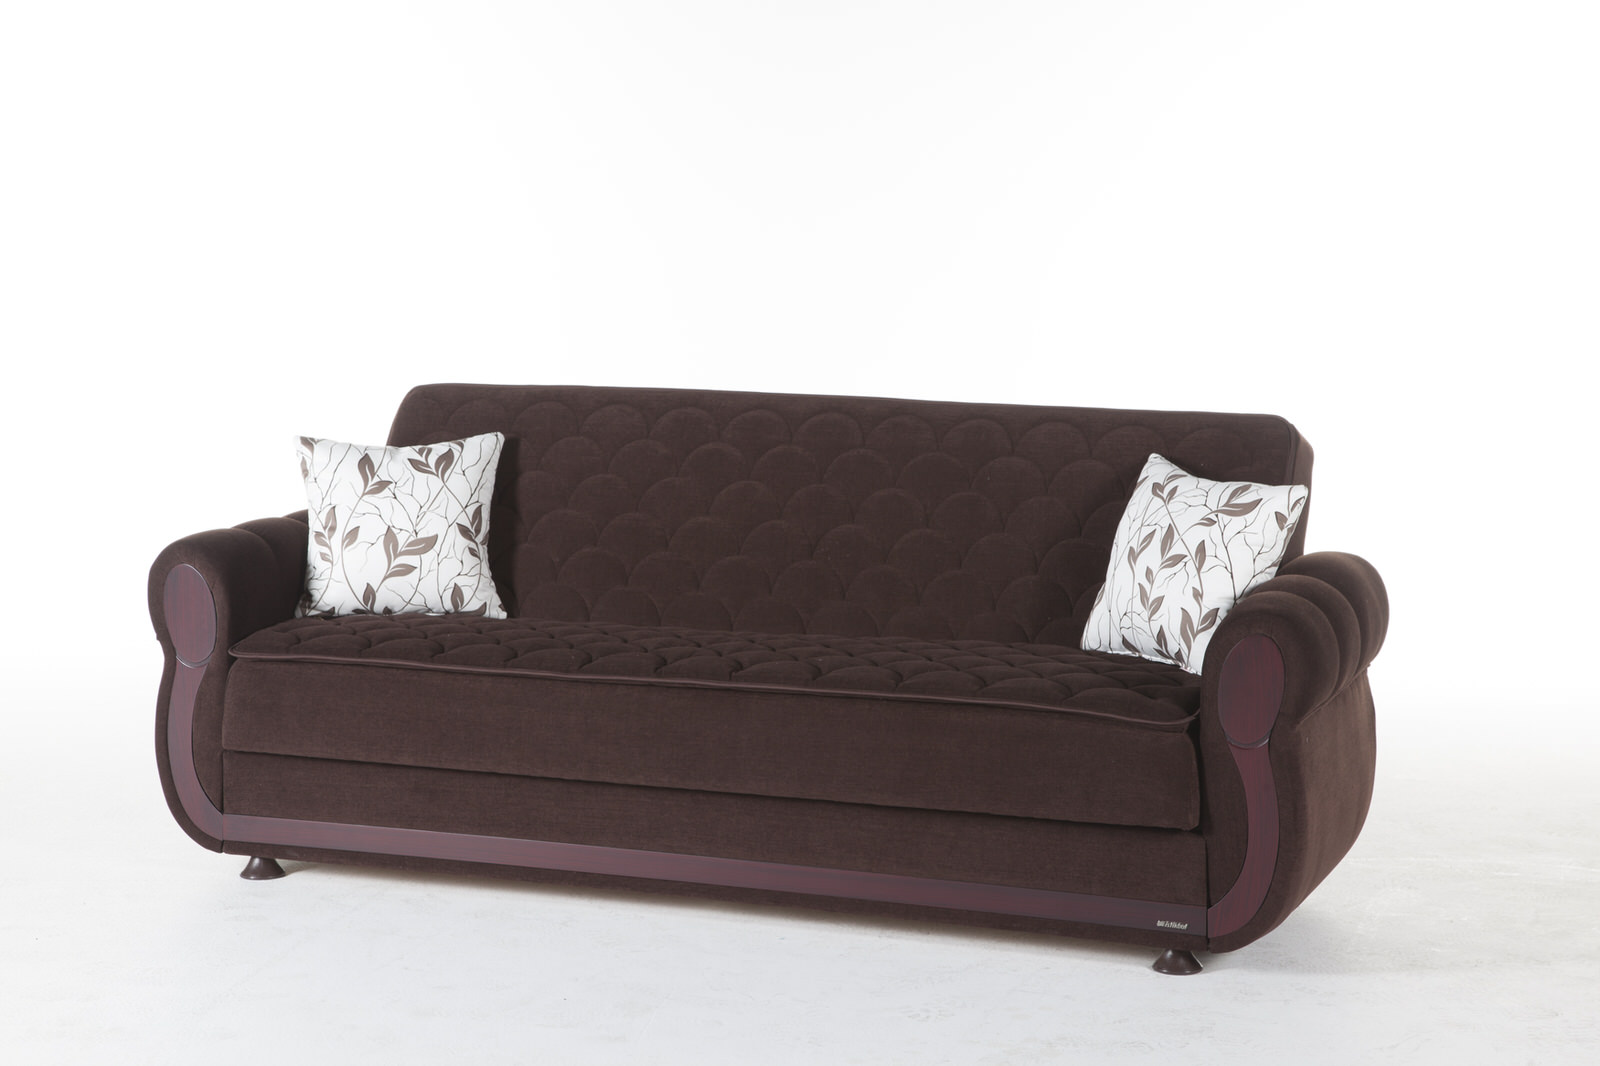 Argos Colins Brown Convertible Sofa Bed by Sunset : argoscolinbrown3 from www.functionalfurniturenyc.com size 1600 x 1066 jpeg 153kB